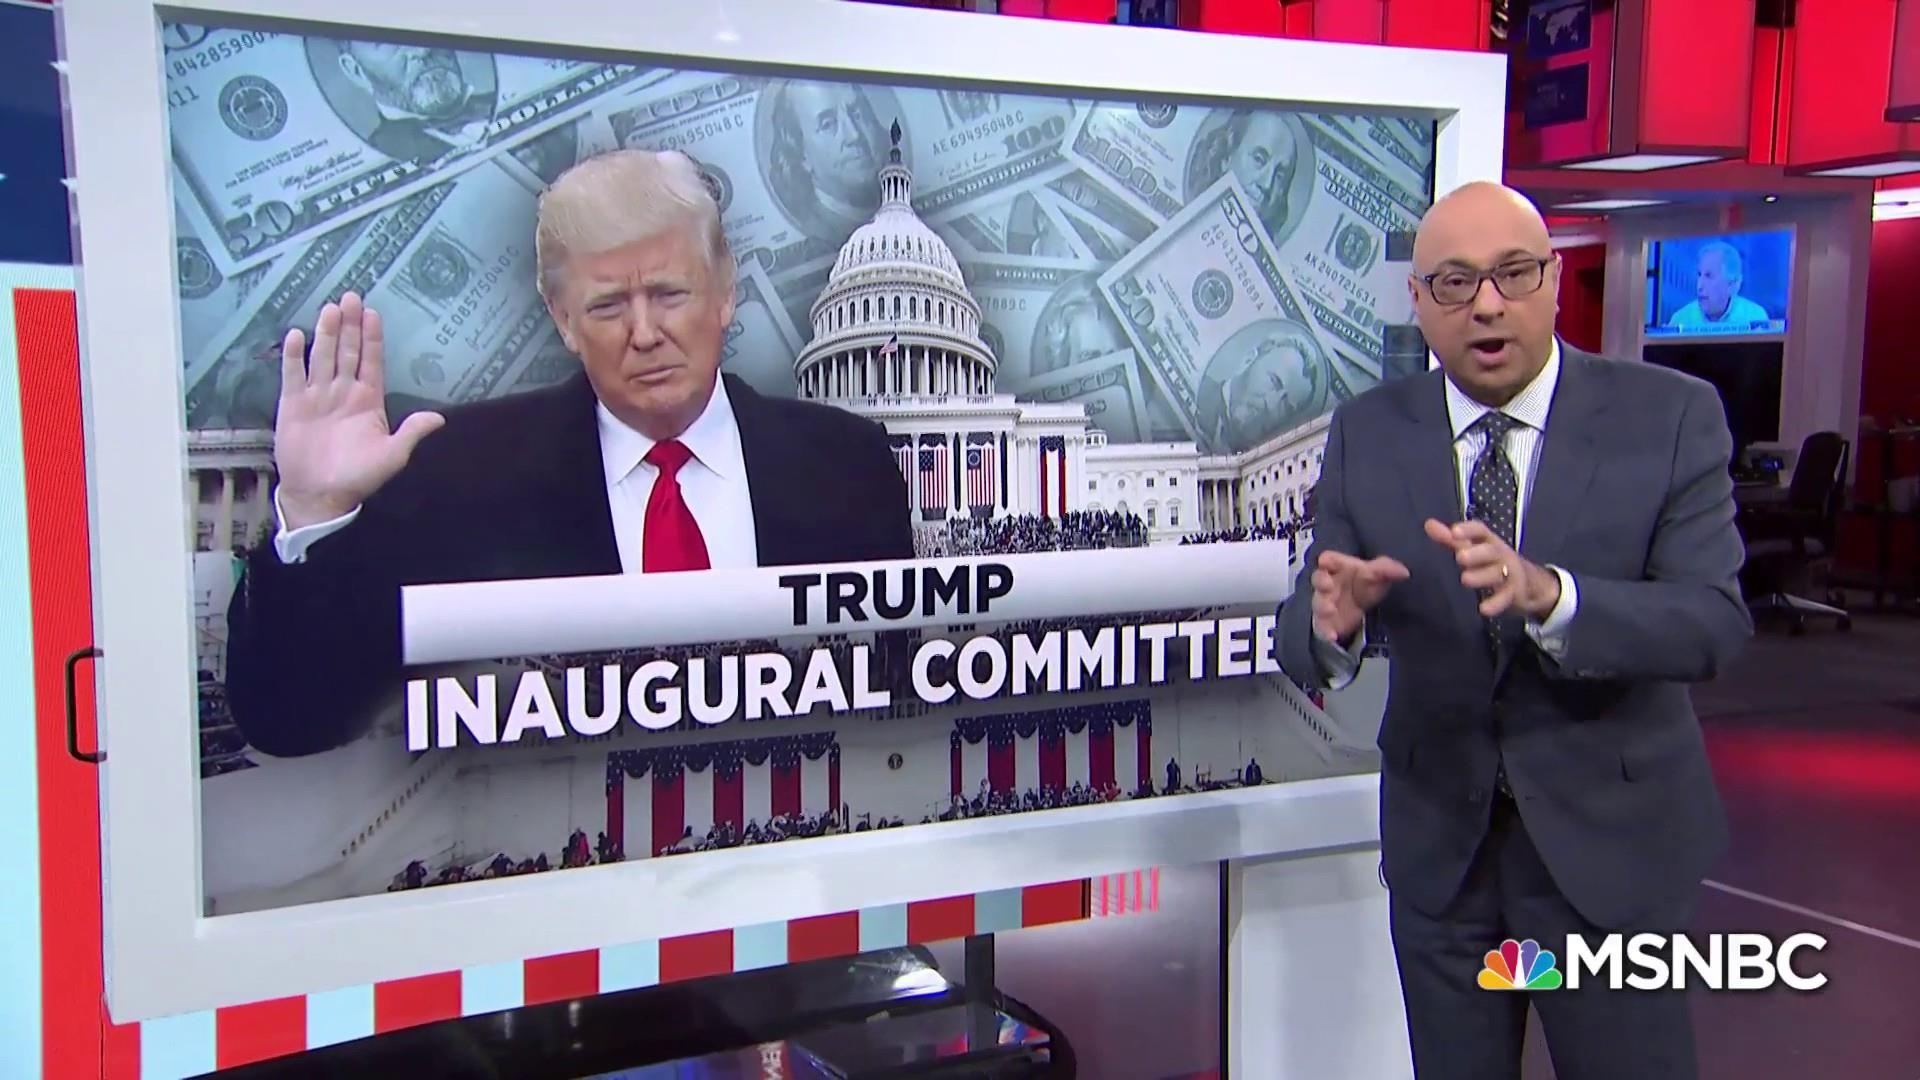 Should Trump be worried about the inaugural committee probe?